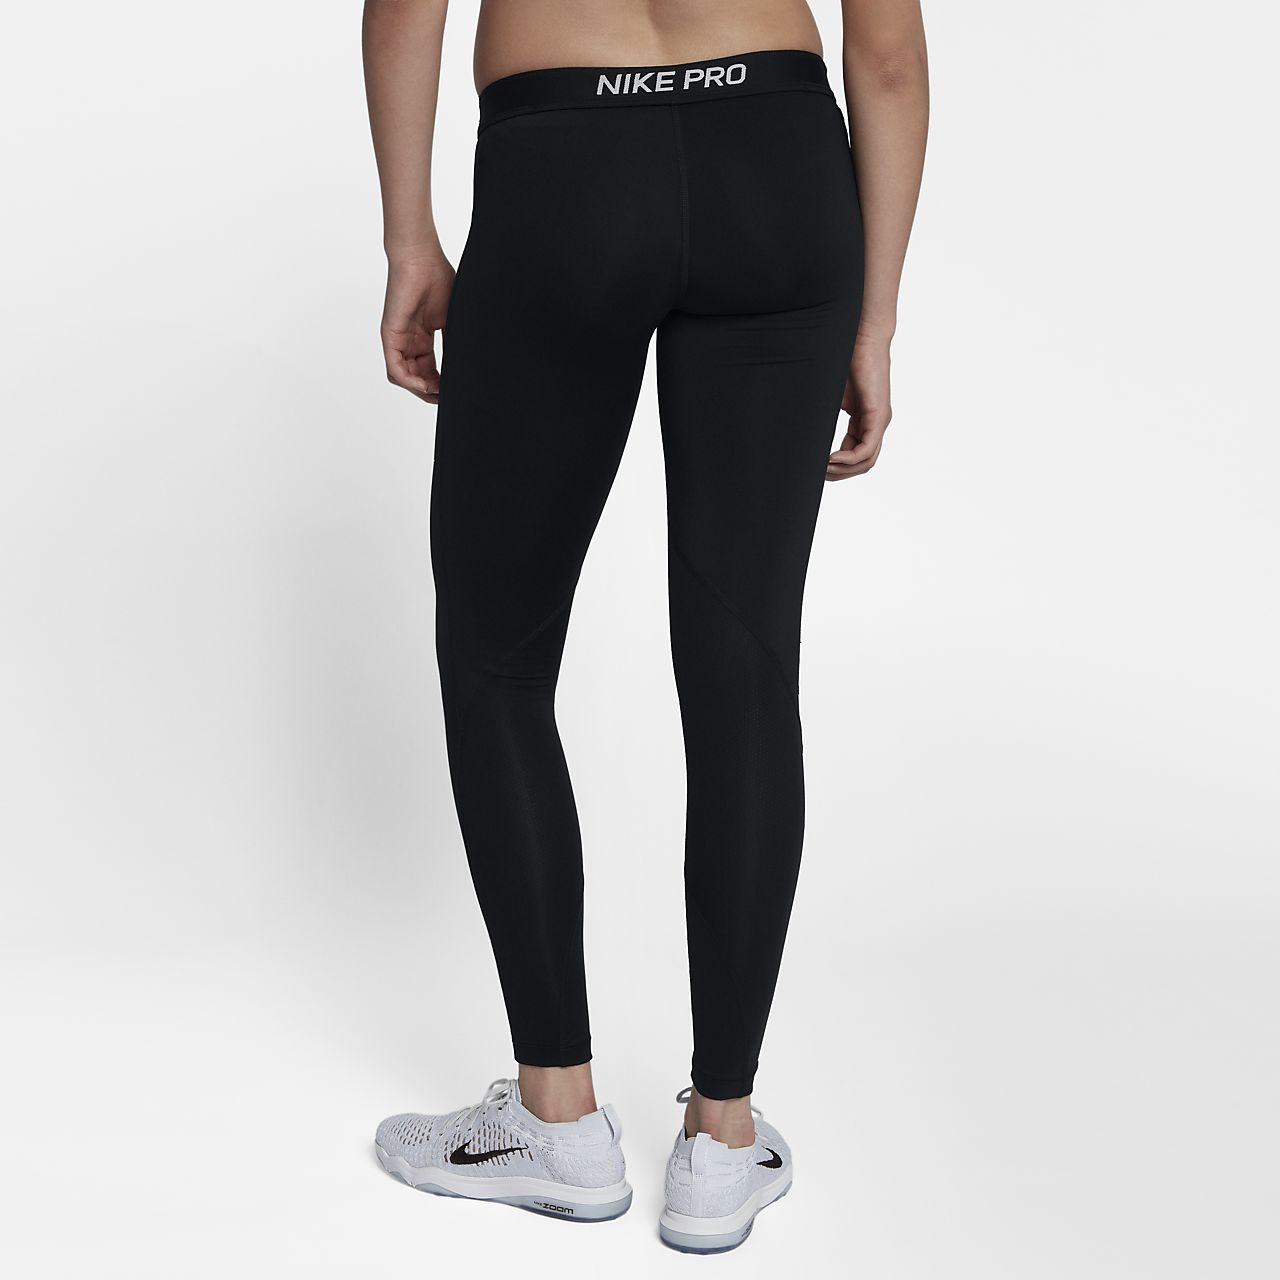 968695cddea89 Nike Pro Women's Mid-Rise Training Tights. Nike.com